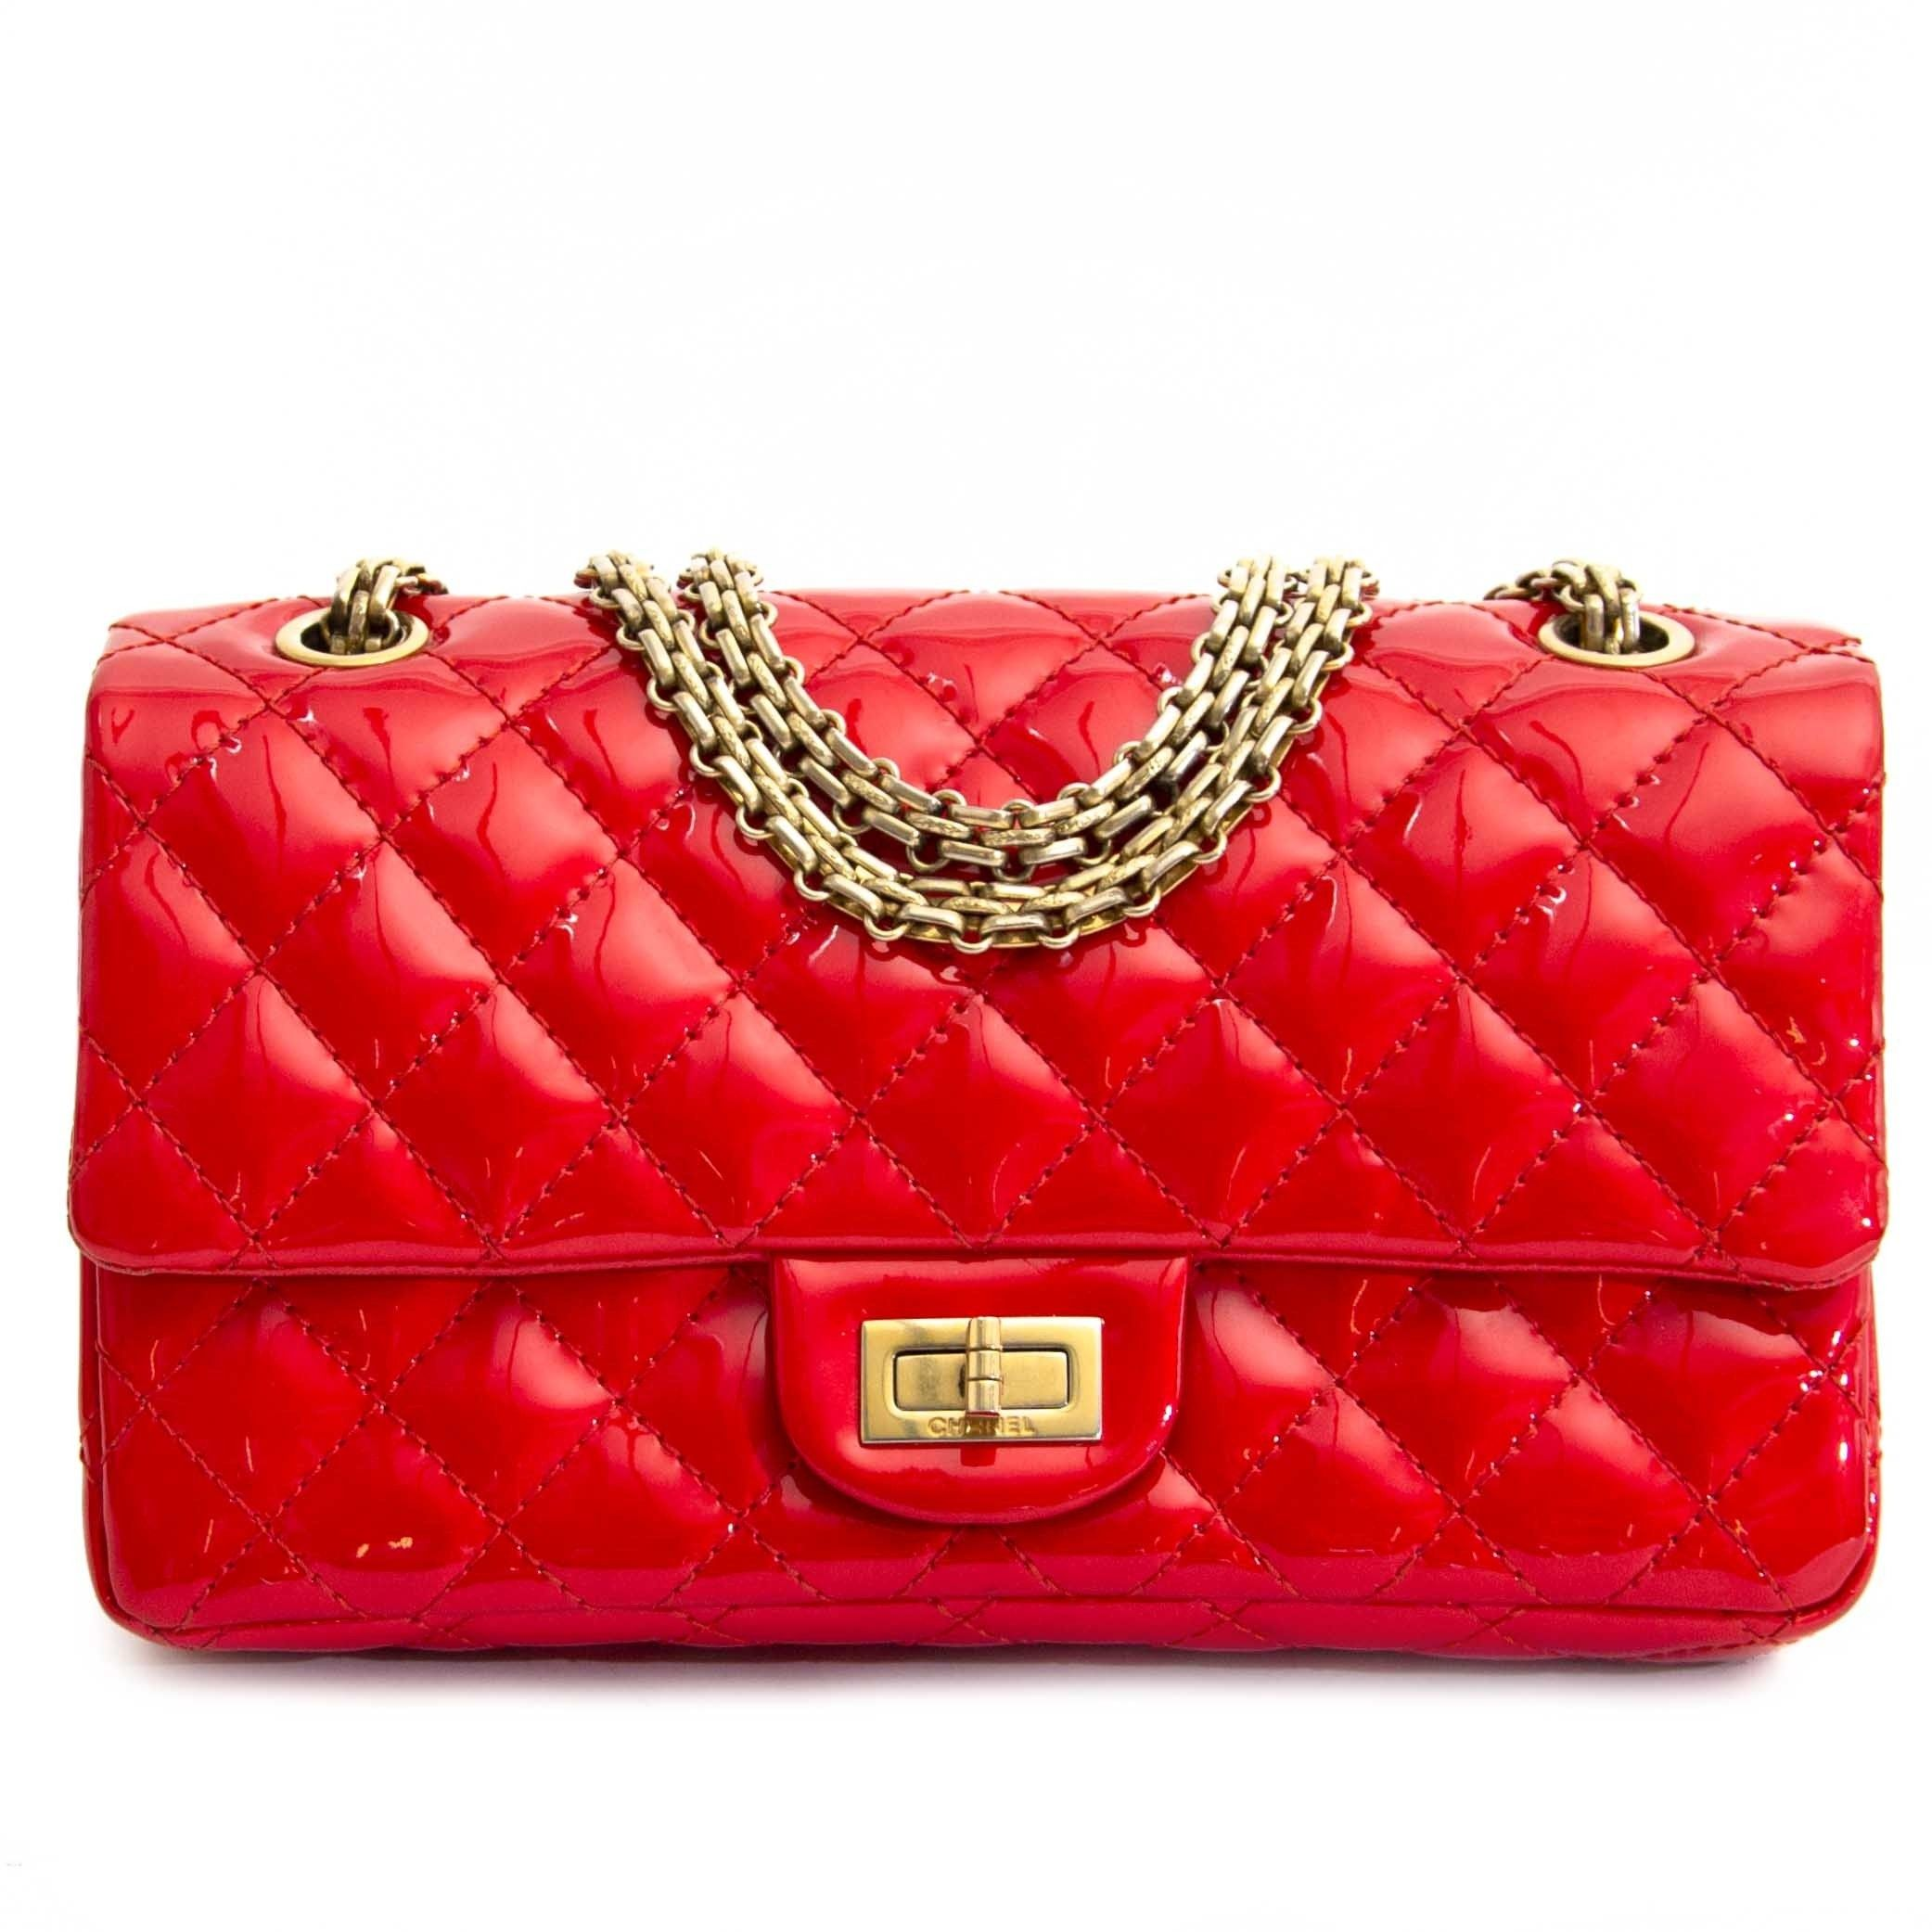 4f9f18c78ffa Chanel Patent Red Quilted Accordion Reissue 2.55 Flap Bag